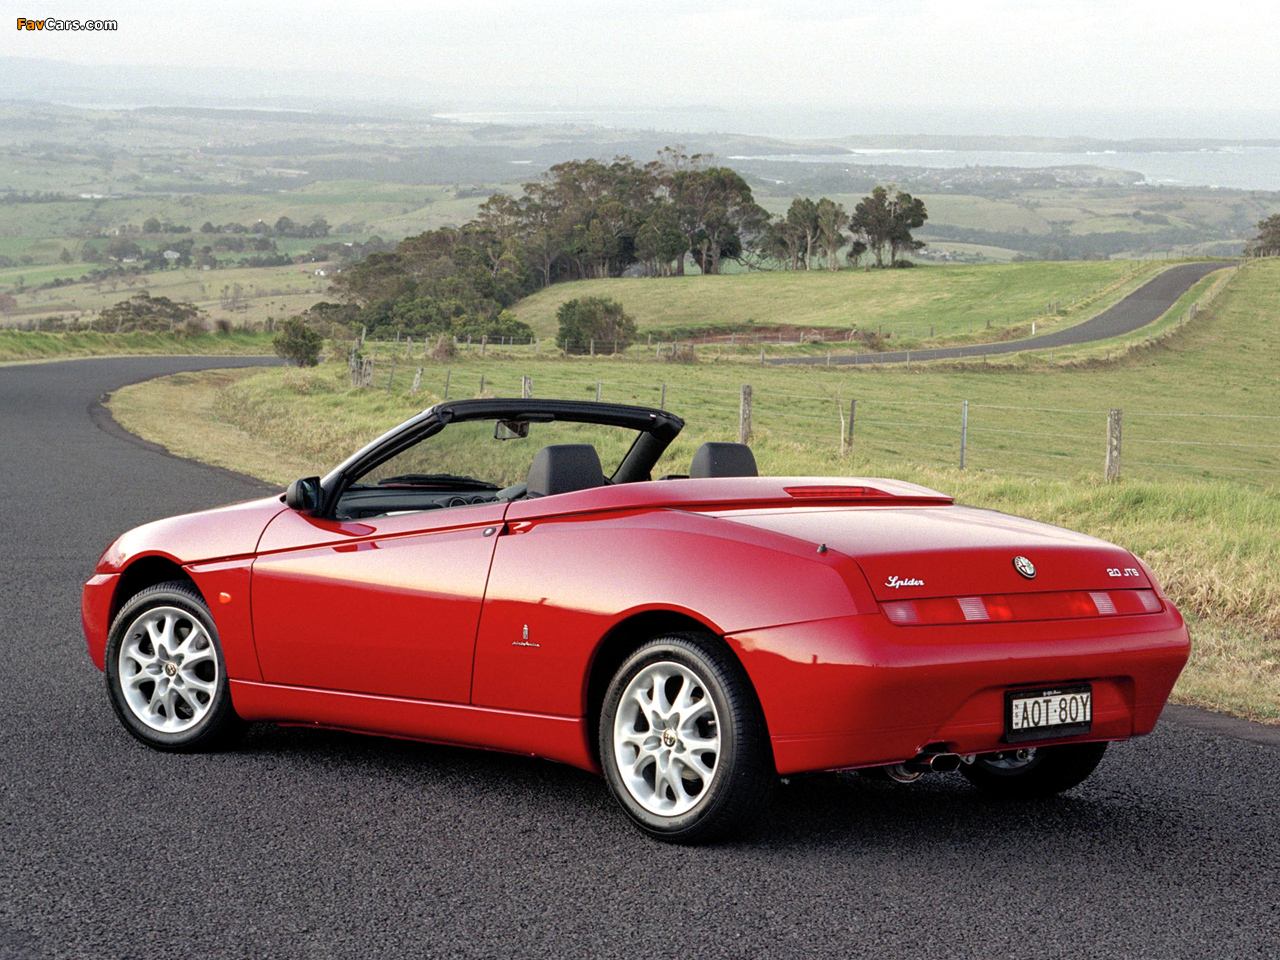 2003 Alfa Romeo Spider photo - 2